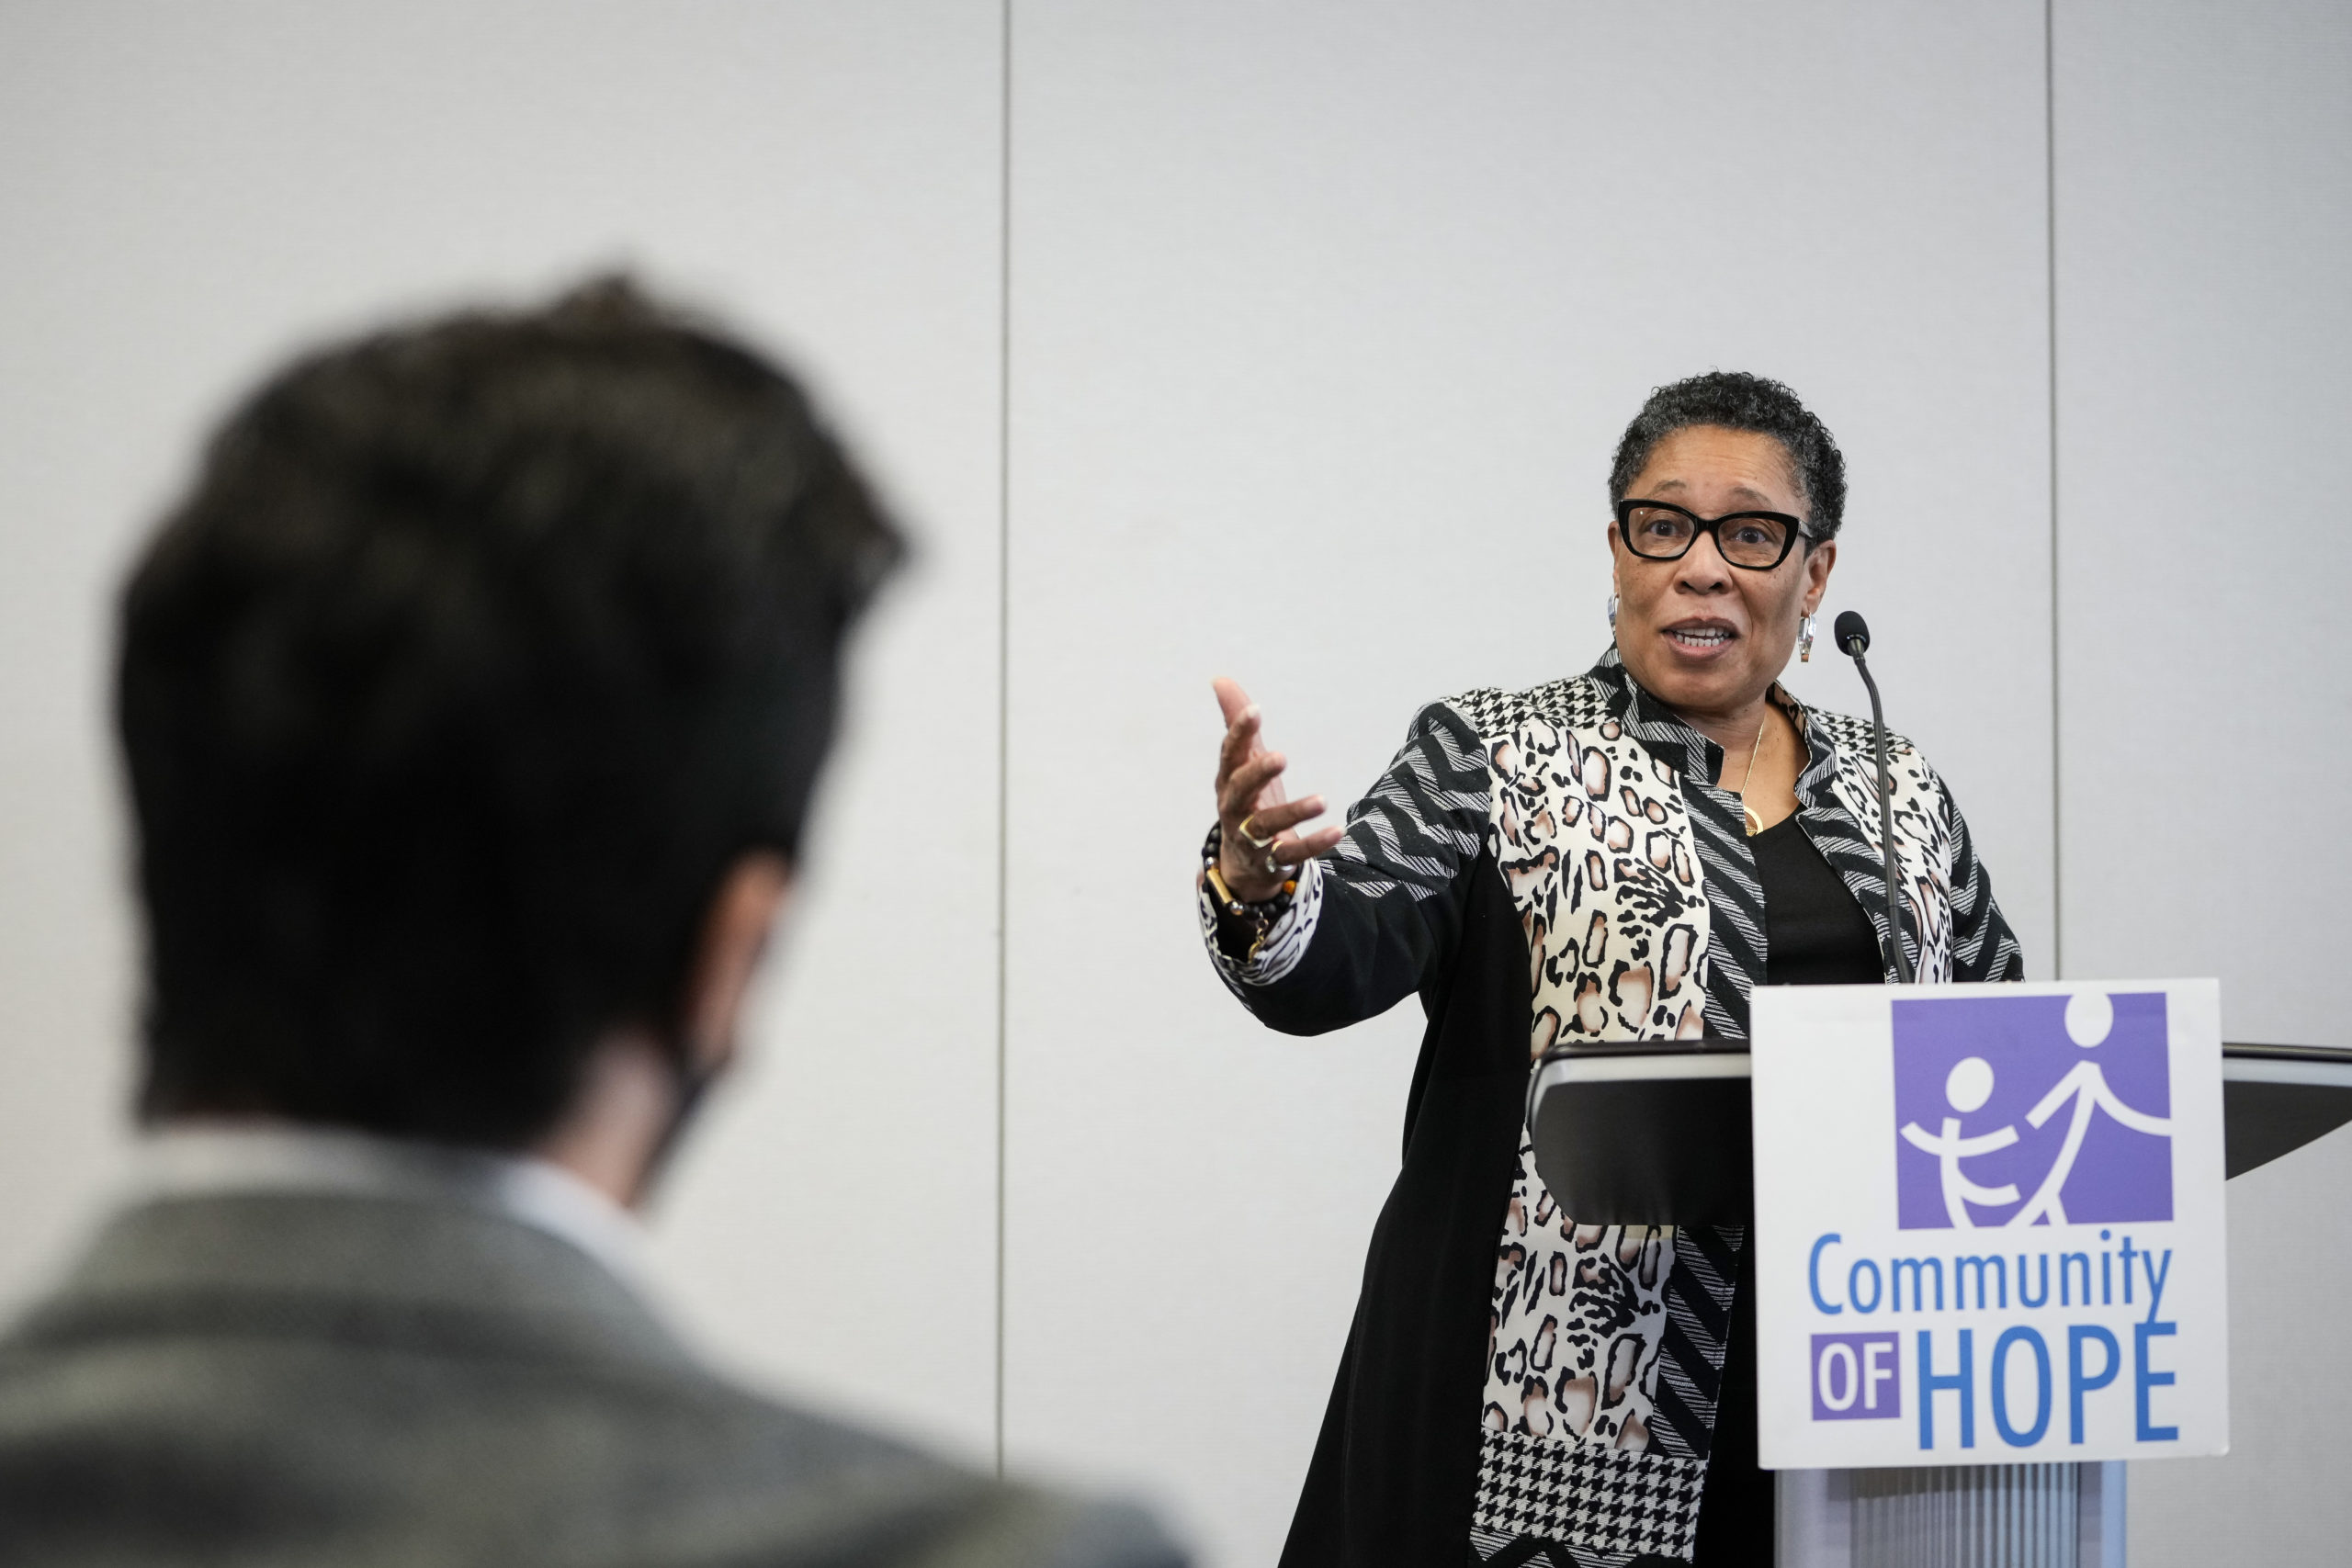 Secretary of Housing and Urban Development Marcia Fudge speaks to the press on May 5. (Drew Angerer/Getty Images)